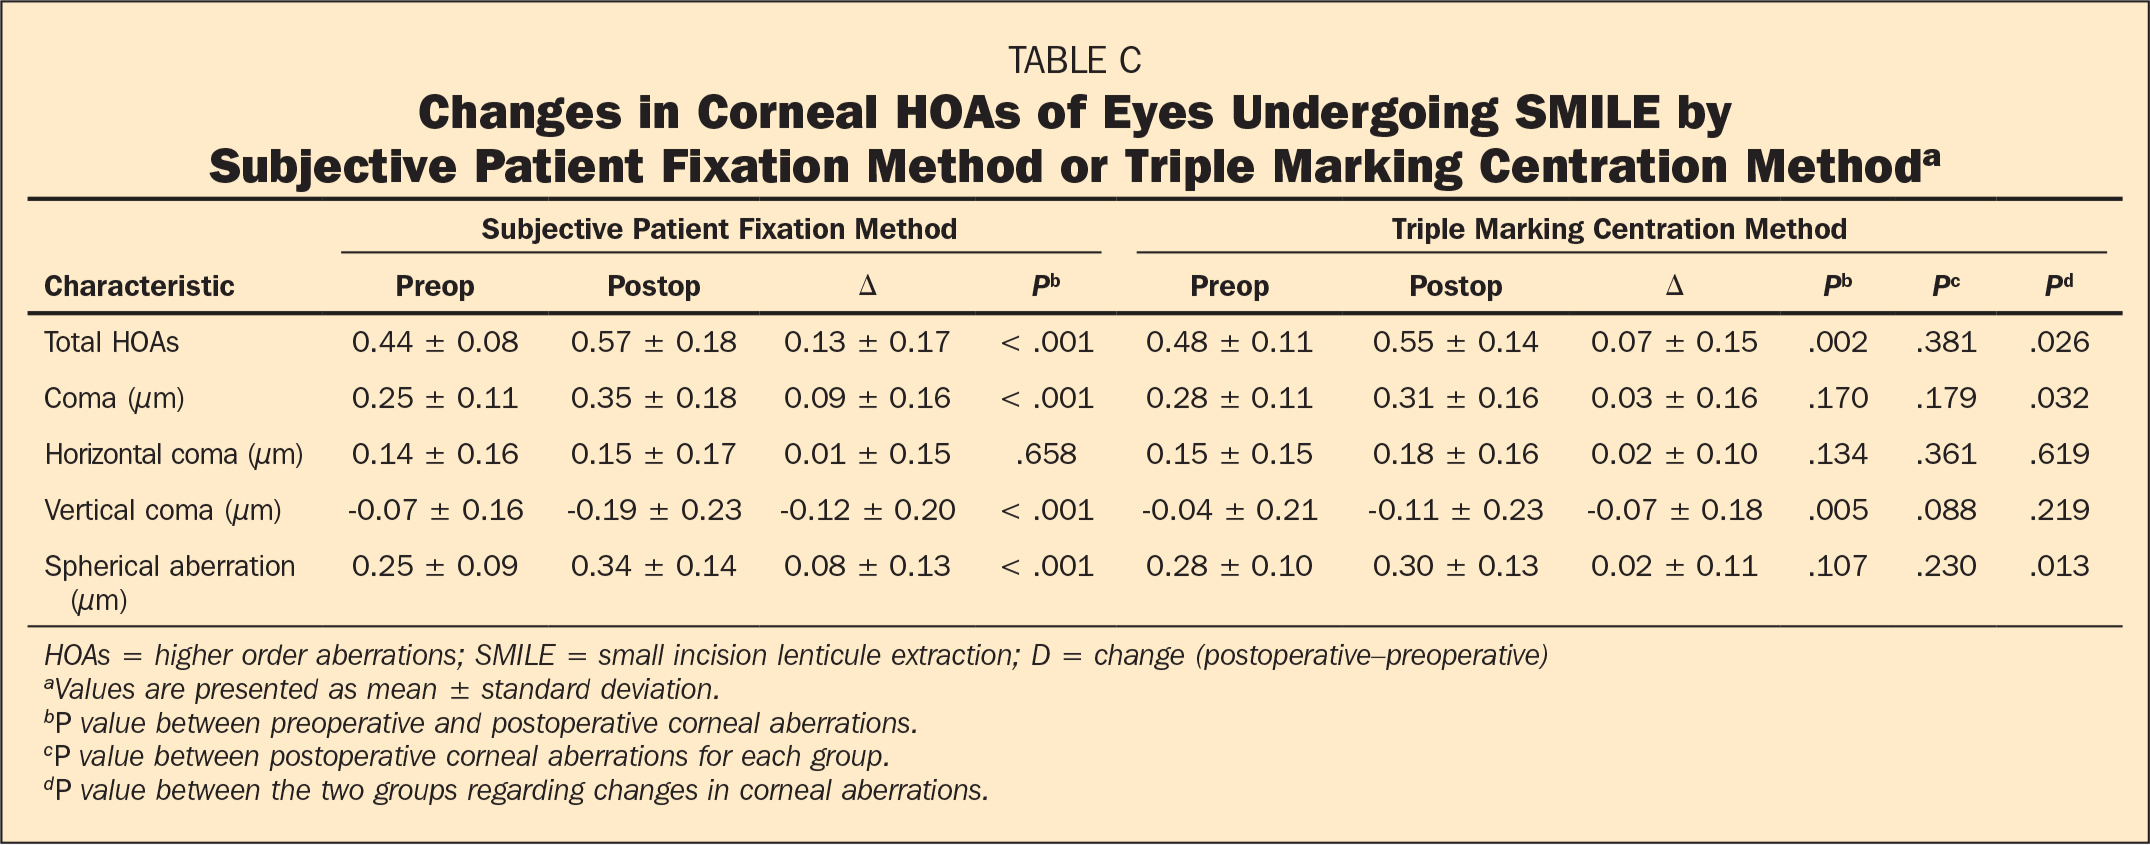 Changes in Corneal HOAs of Eyes Undergoing SMILE by Subjective Patient Fixation Method or Triple Marking Centration Methoda